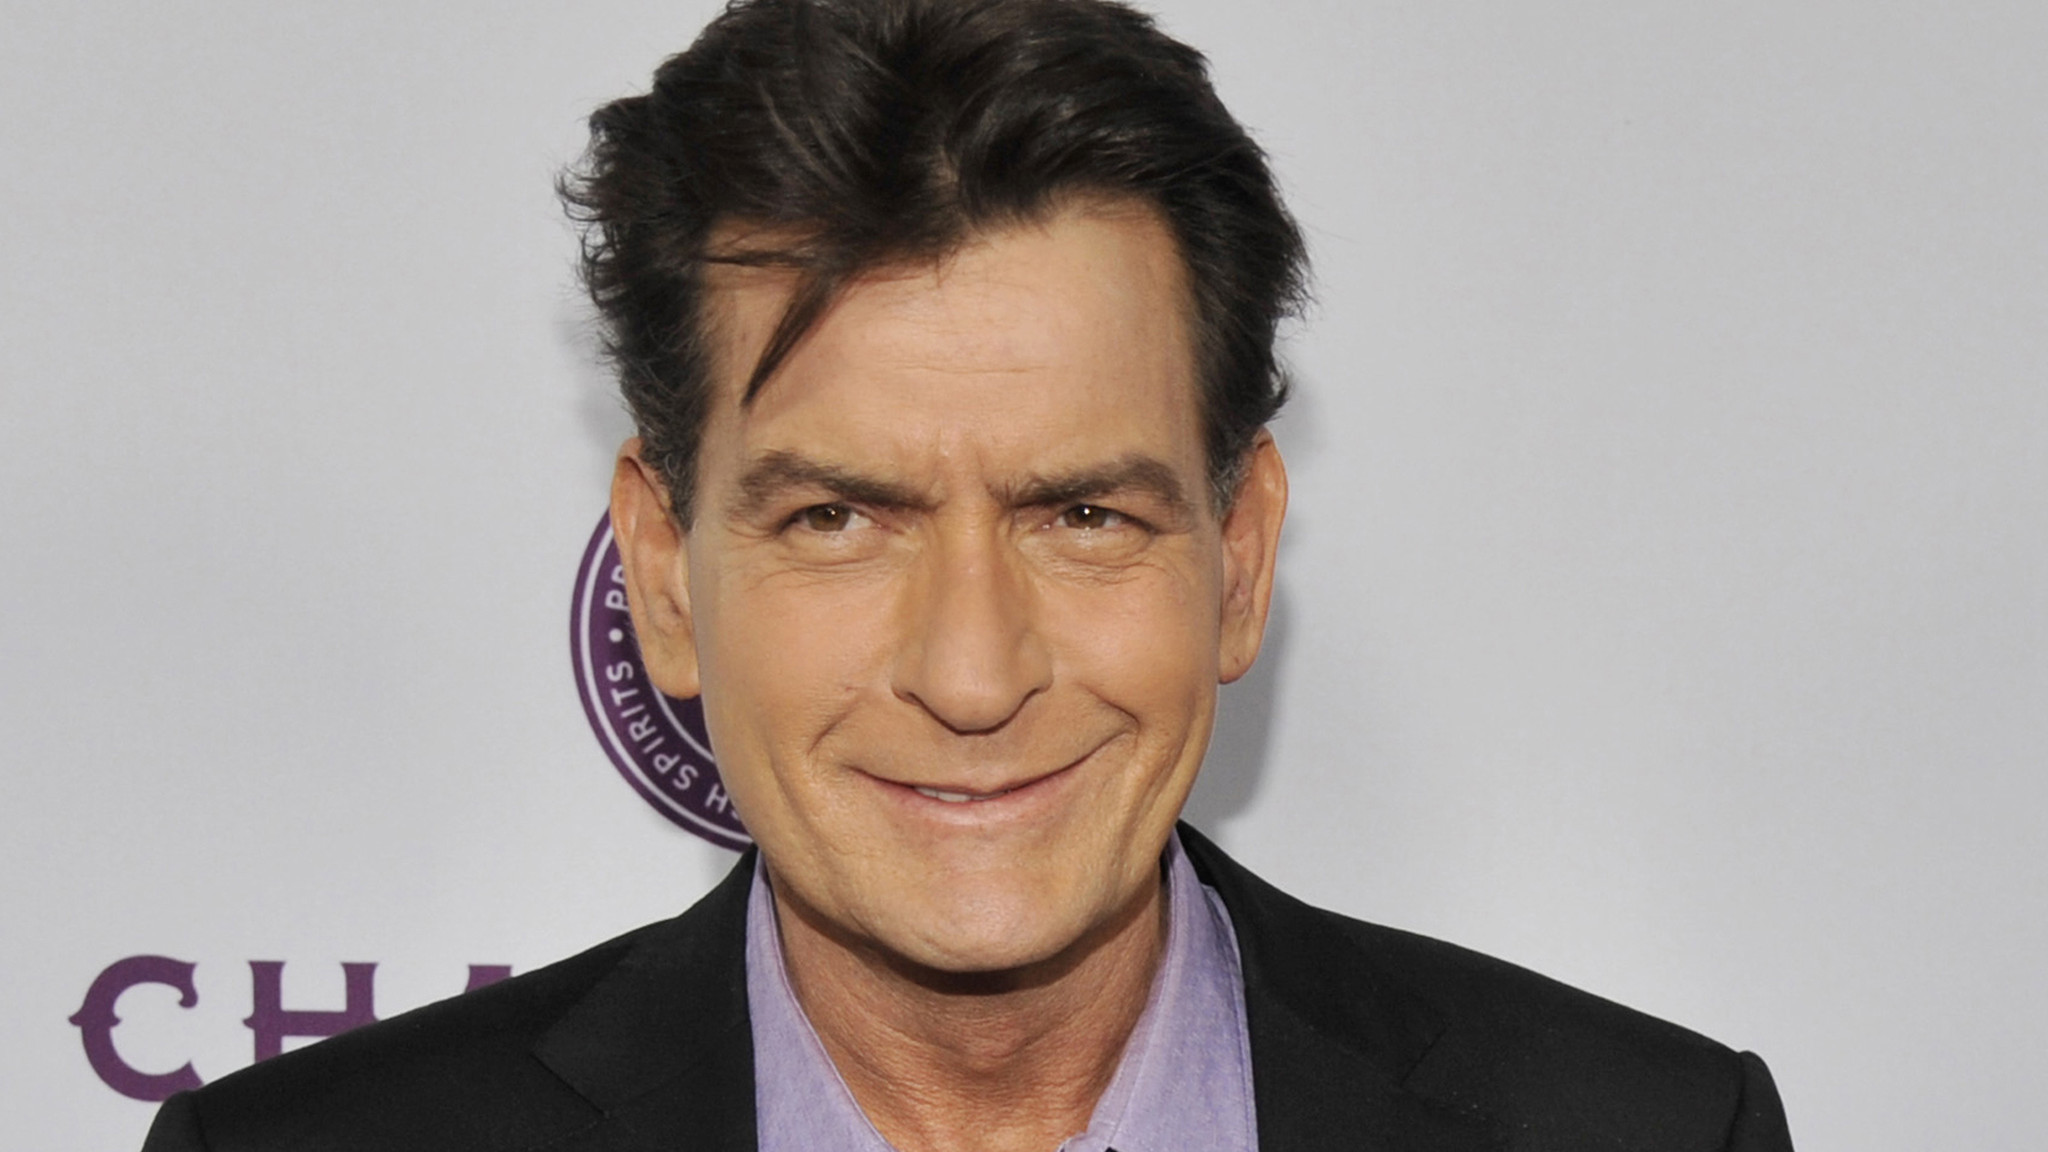 charlie sheen calls off engagement to former porn star brett rossi charlie sheen calls off engagement to former porn star brett rossi la times